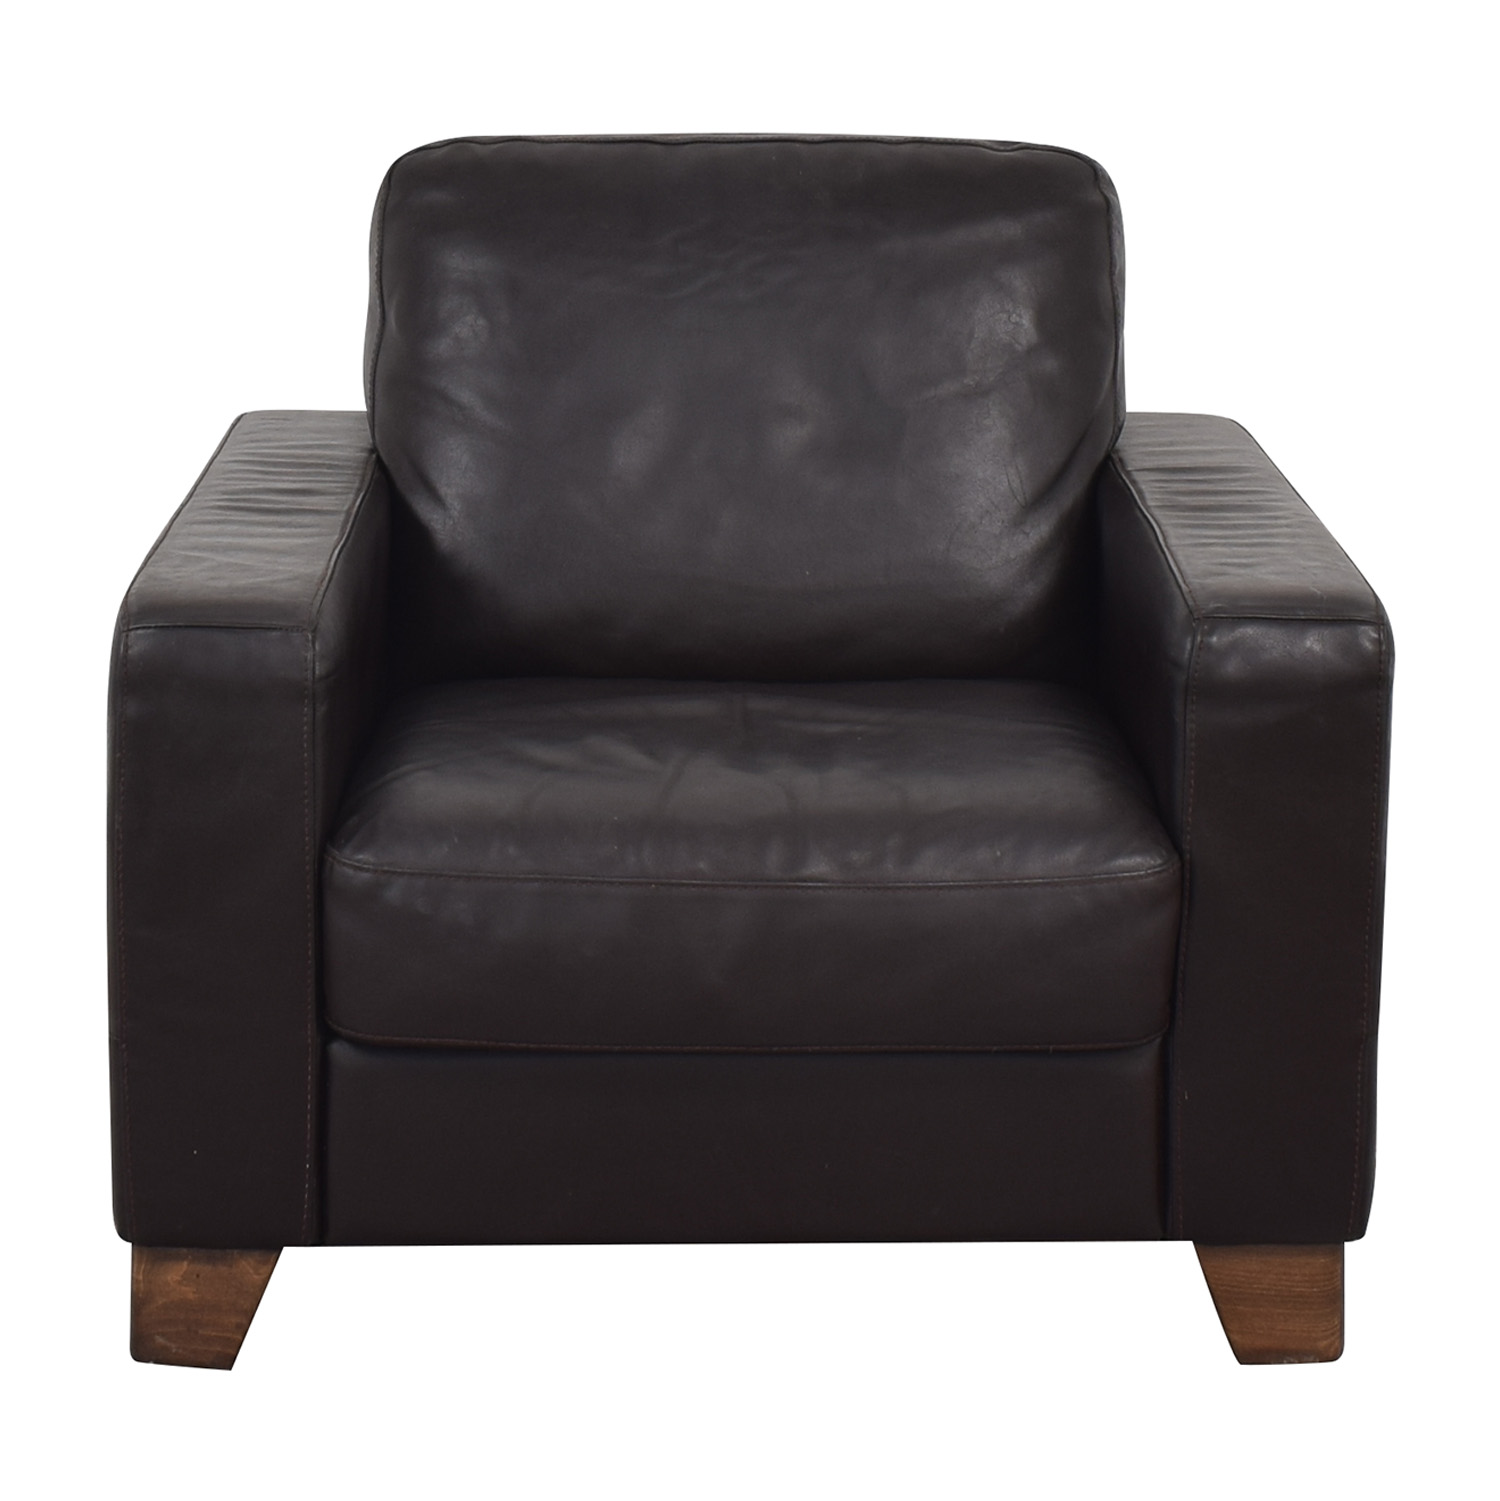 buy Natuzzi Black Leather Chair Natuzzi Accent Chairs